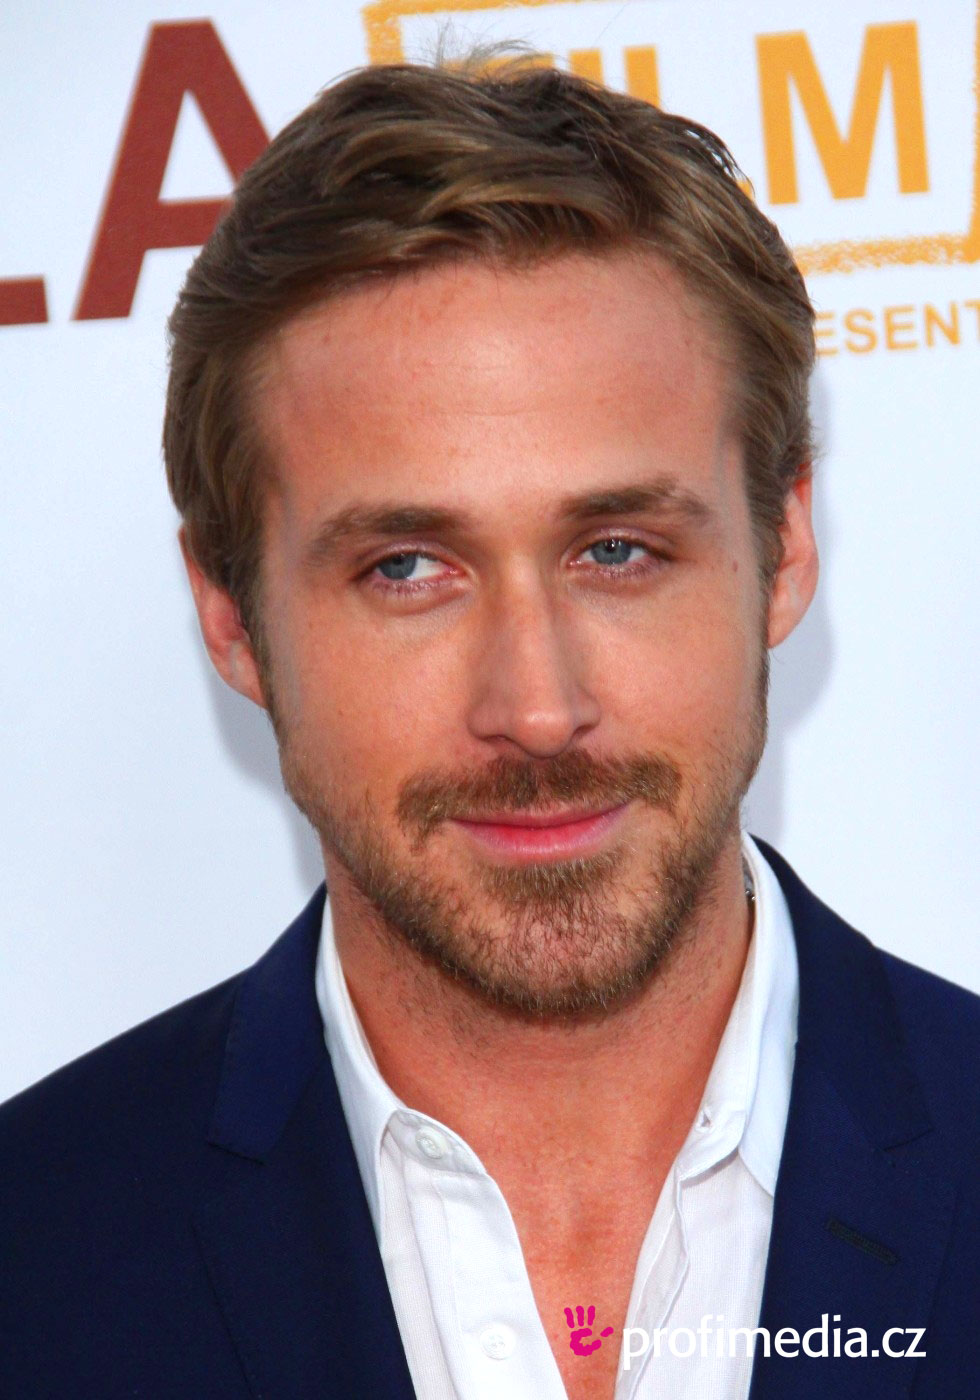 Ryan Gosling Coiffure Happyhair